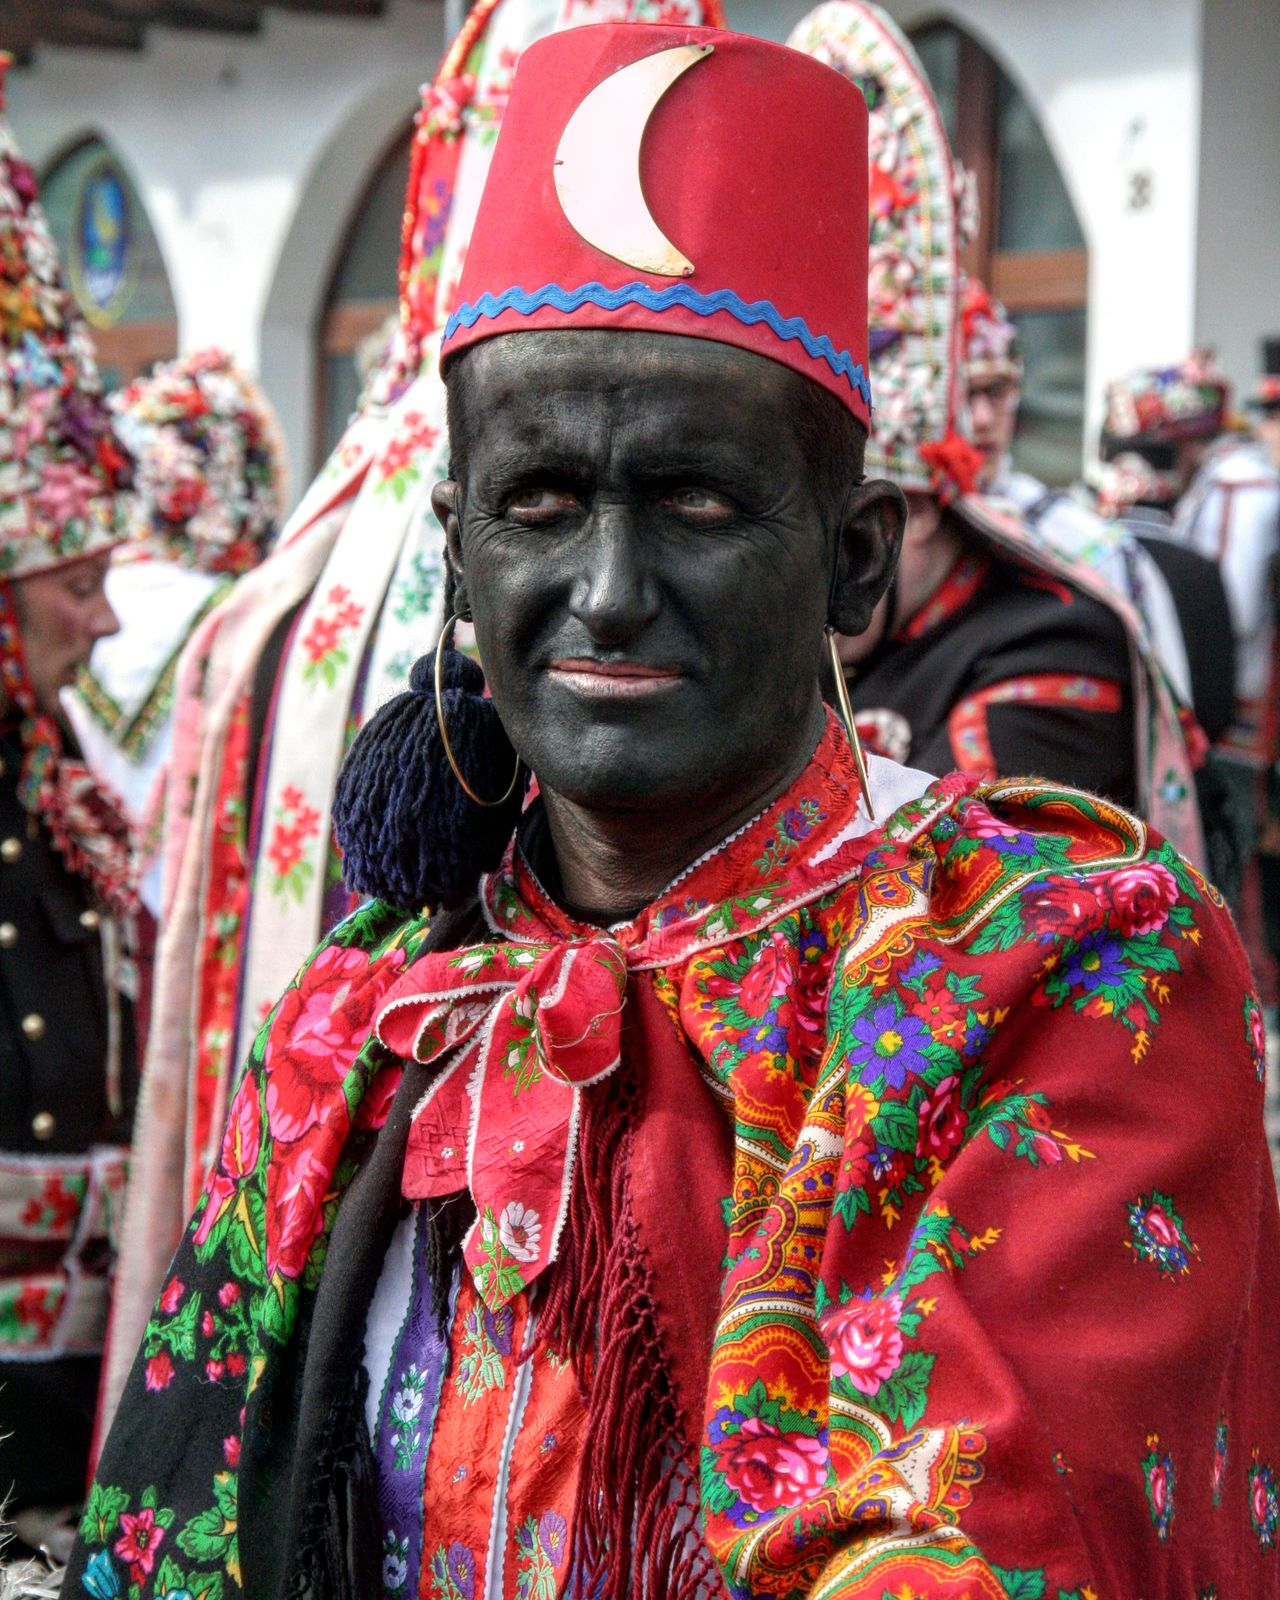 Baio 2017 Italy Baio 2017 Baio Italy EyeEm Gallery Popular EyeEmBestPics EyeEm Team Popular Photos Trending Photos Costume Traditional Culture One Person Close-up Traditional Clothing Cultures Parade Carnival Eyeem Market Uniqueness Colour Of Life Fashion Carnival Crowds And Details